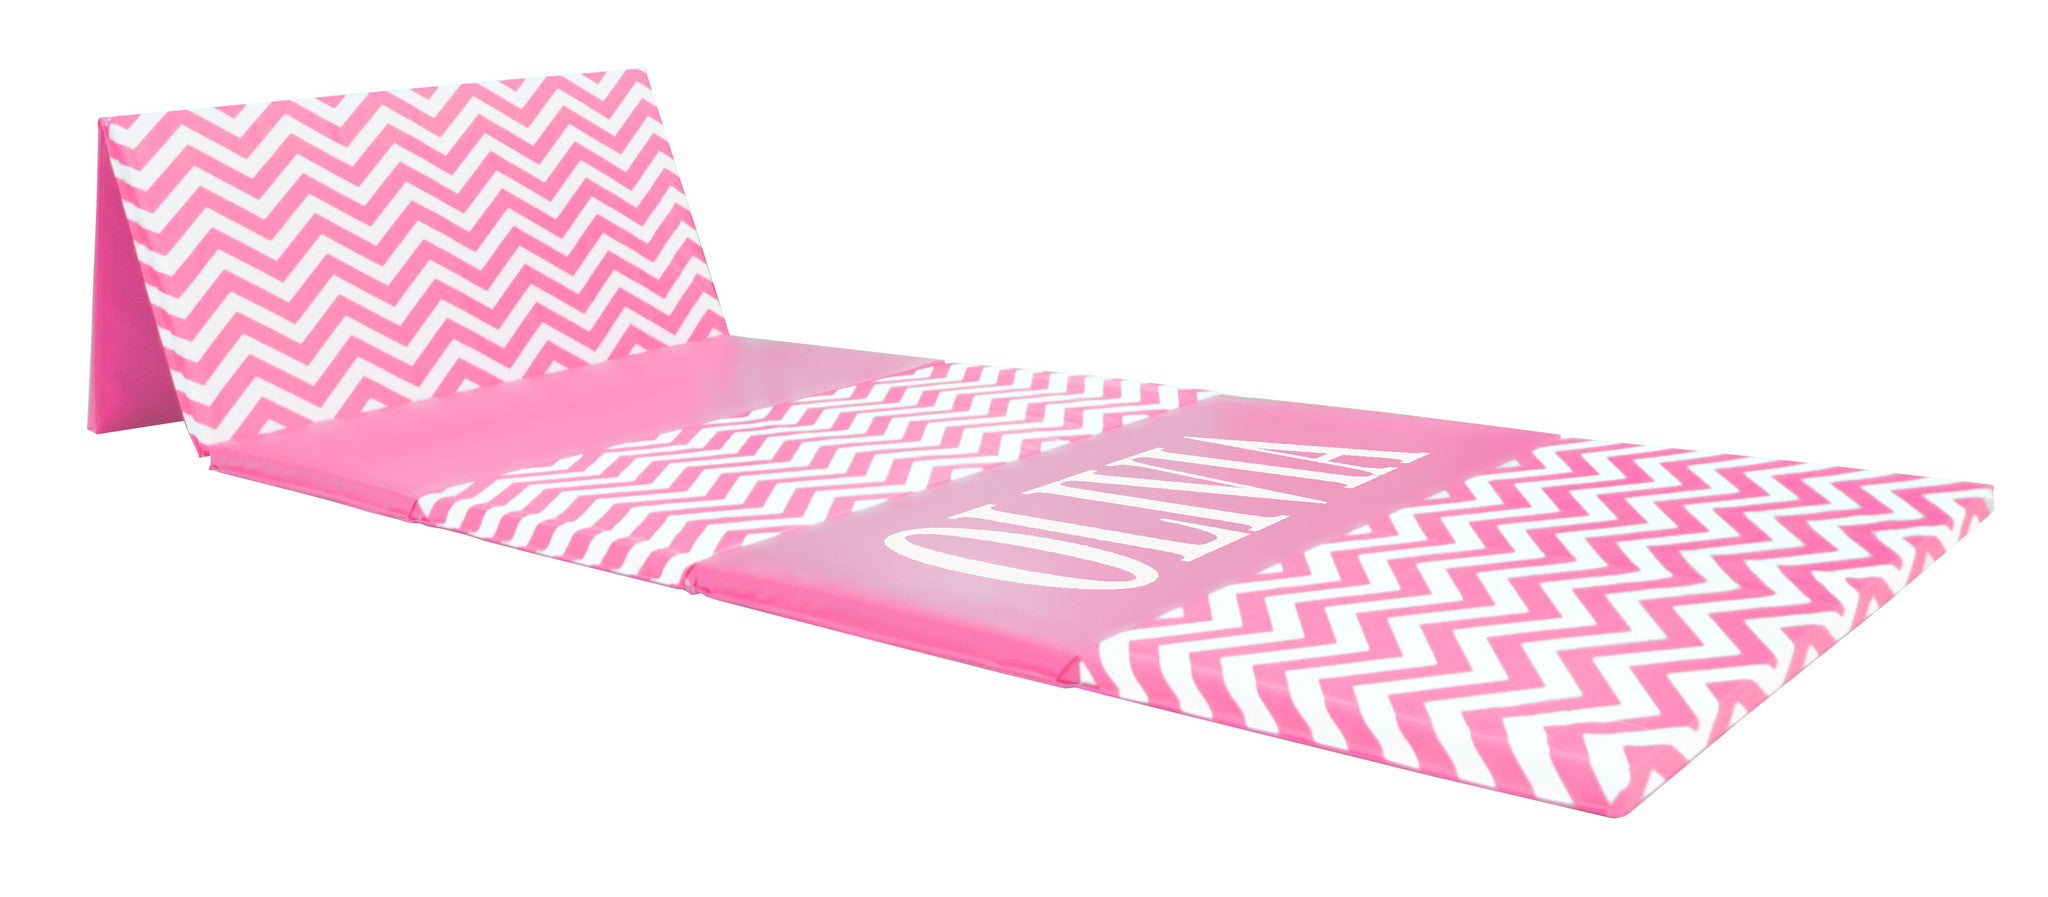 "CLEARANCE LOWEST PRICE OF THE YEAR Chevron Zigzag 4' x 12' x 1 3/8"" Advanced Level Folding Gymnastics Mat"